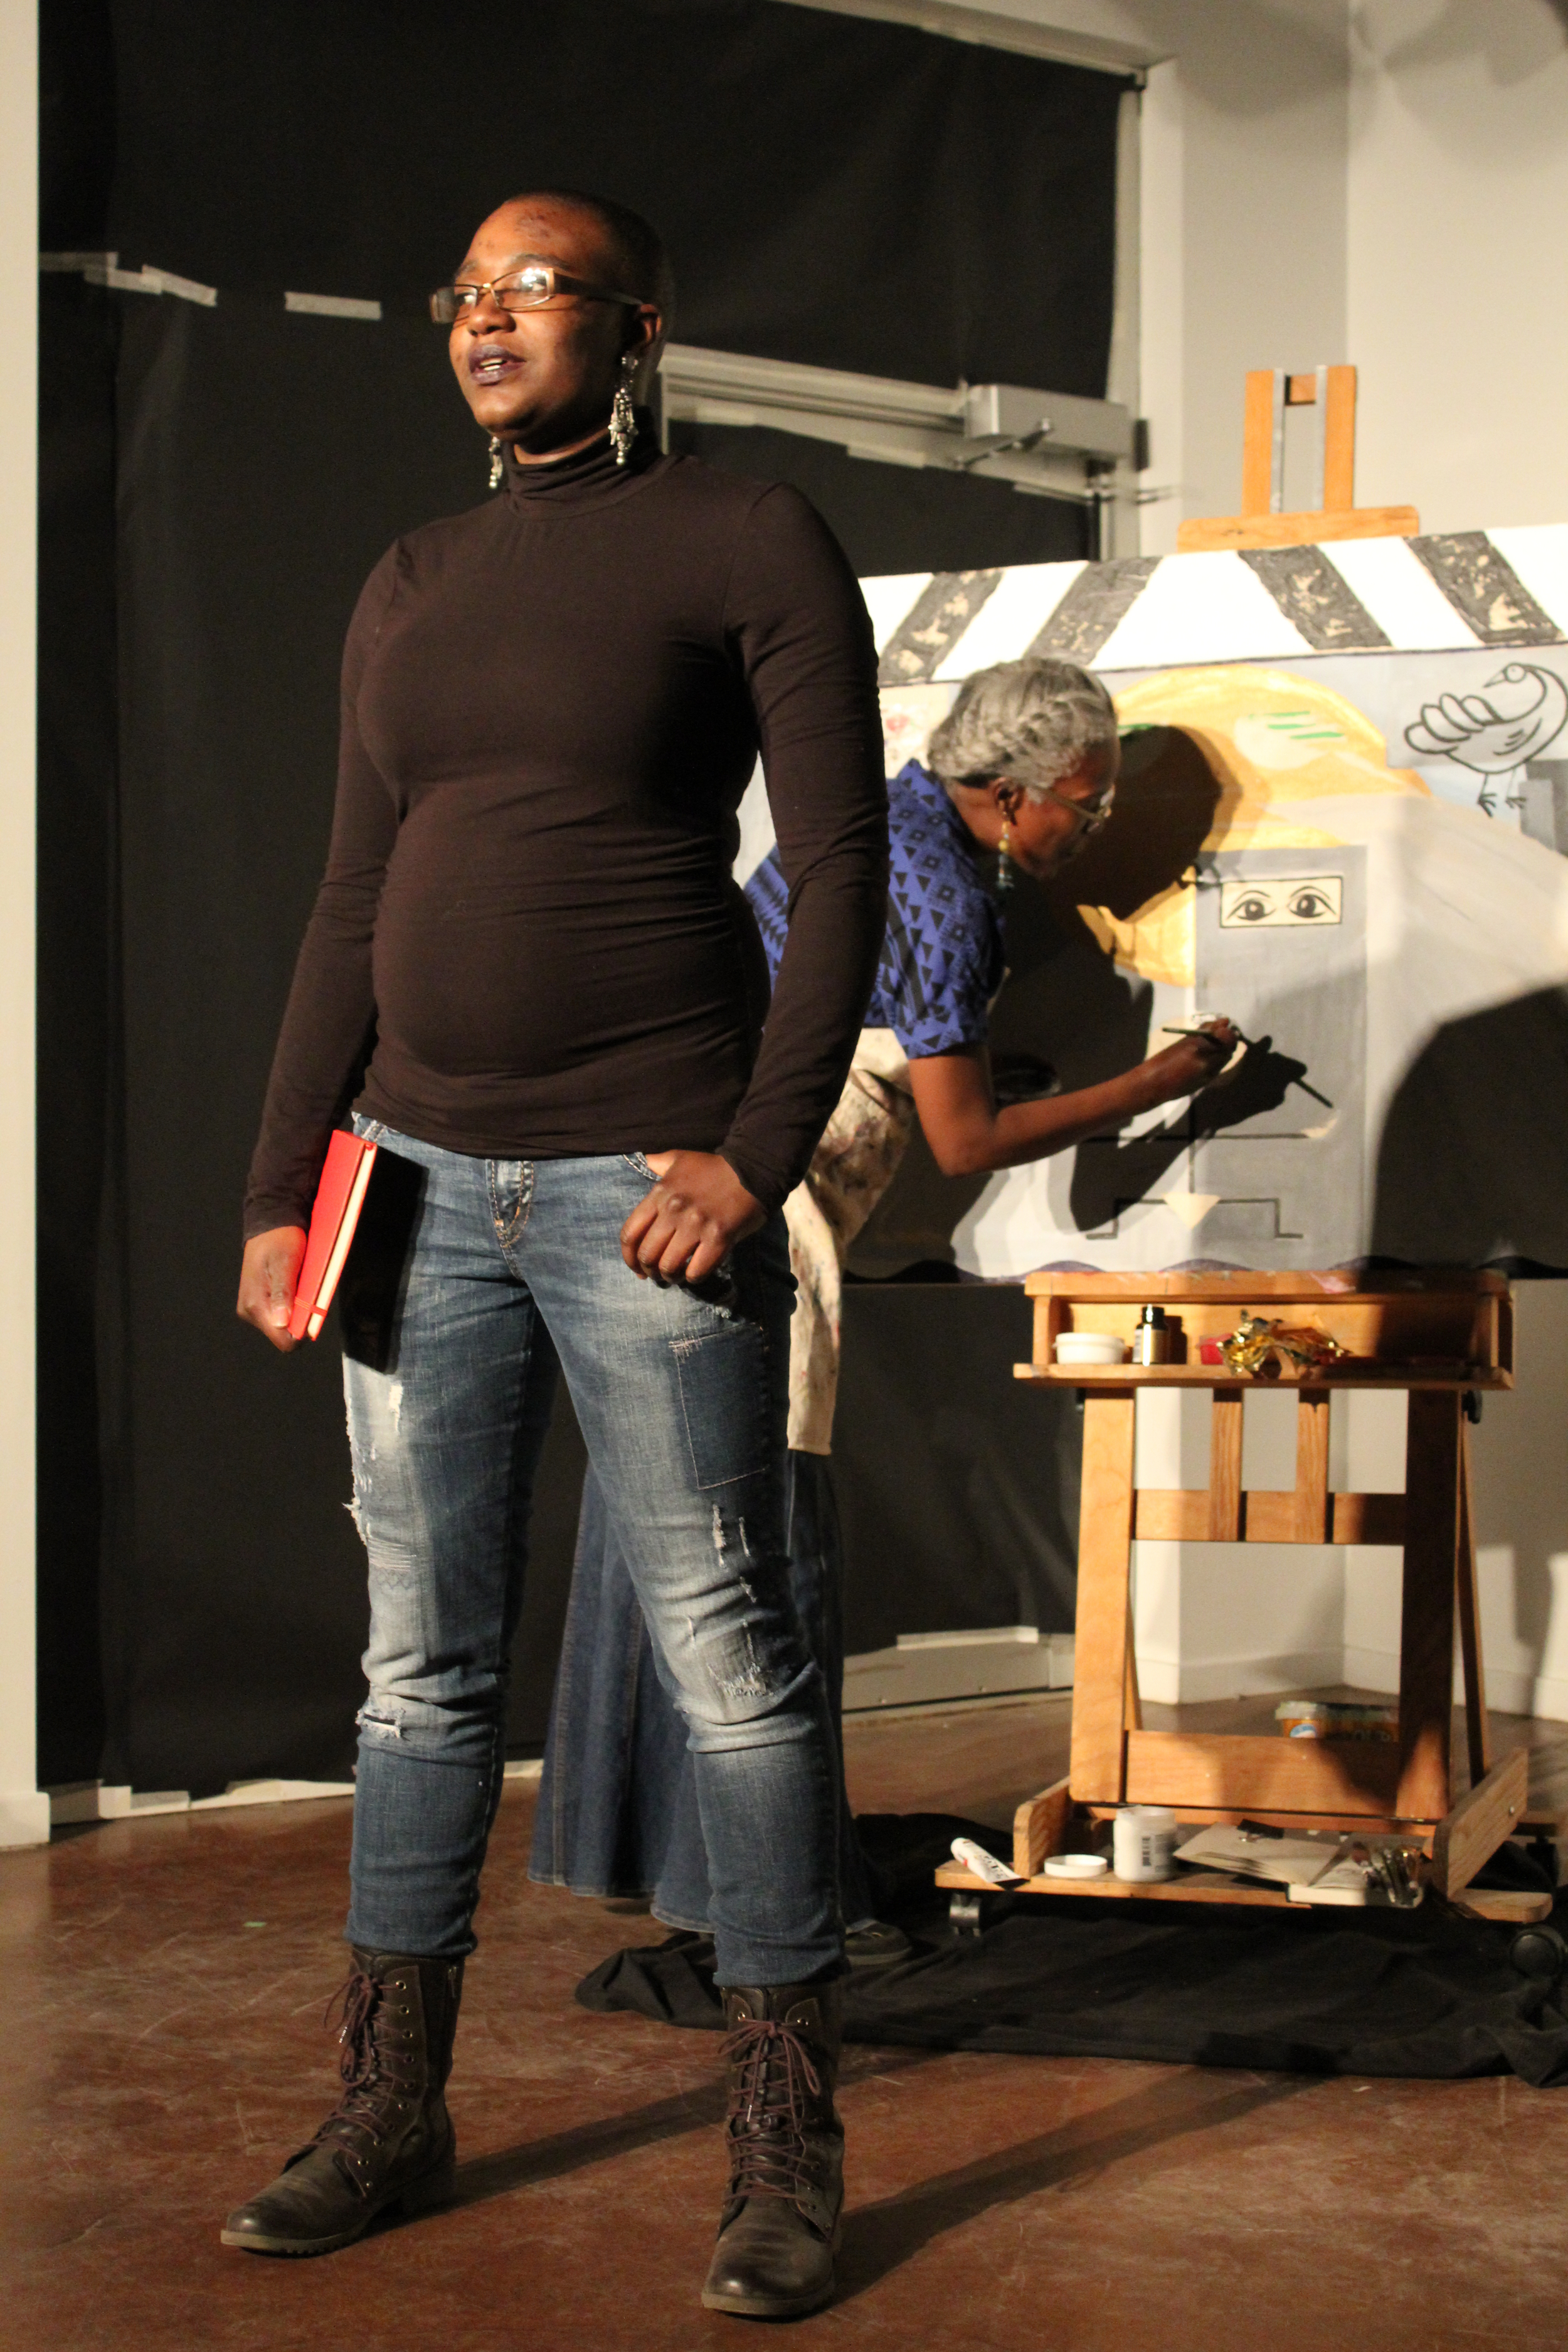 Shima Robinson (left) and her mother Elsa Robinson (Right) take centre stage for a collaboration at the SkirtsAfire herArts Festival